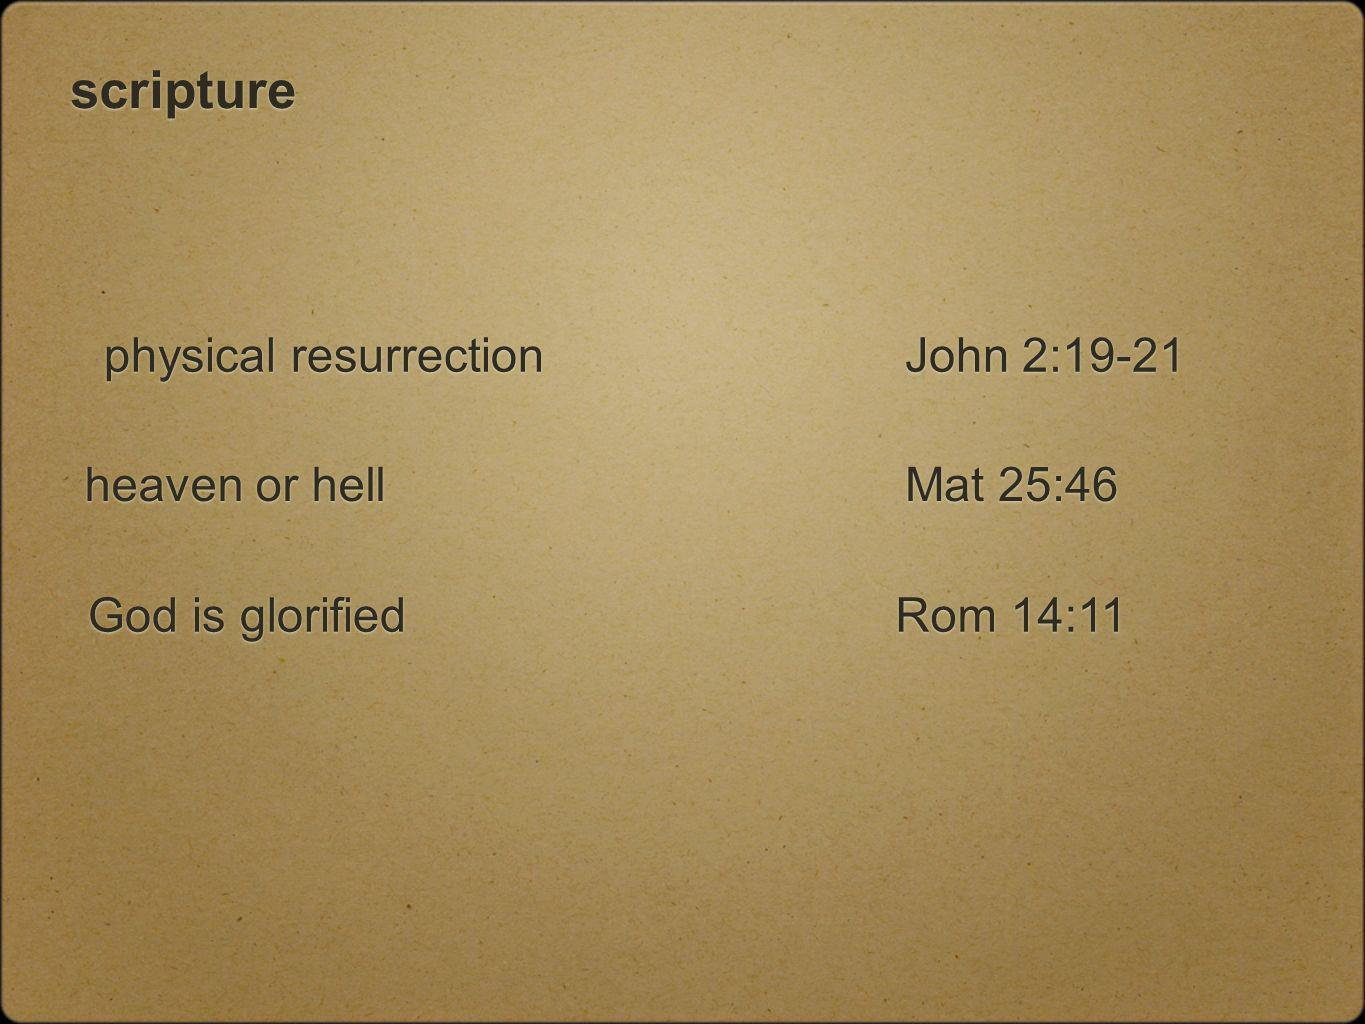 scripture physical resurrection heaven or hell God is glorified John 2:19-21 Rom 14:11 Mat 25:46